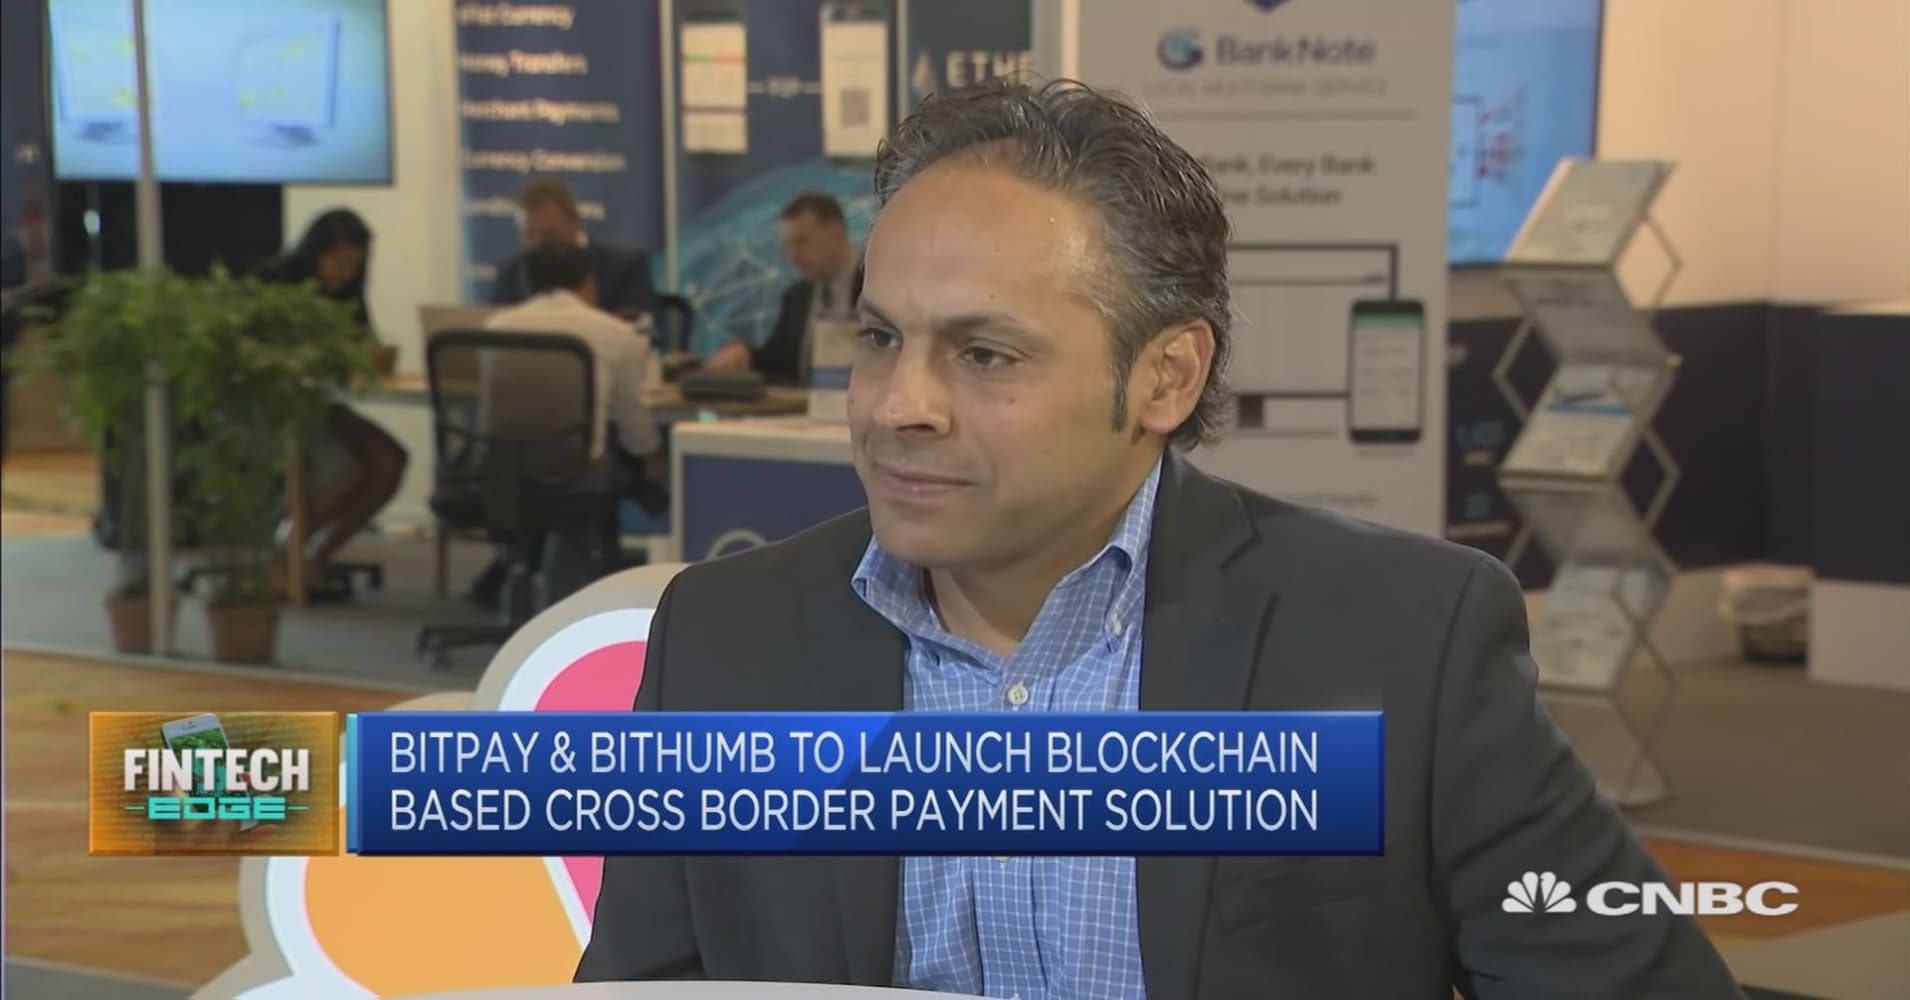 Bitpay on its latest partnership with Bithumb